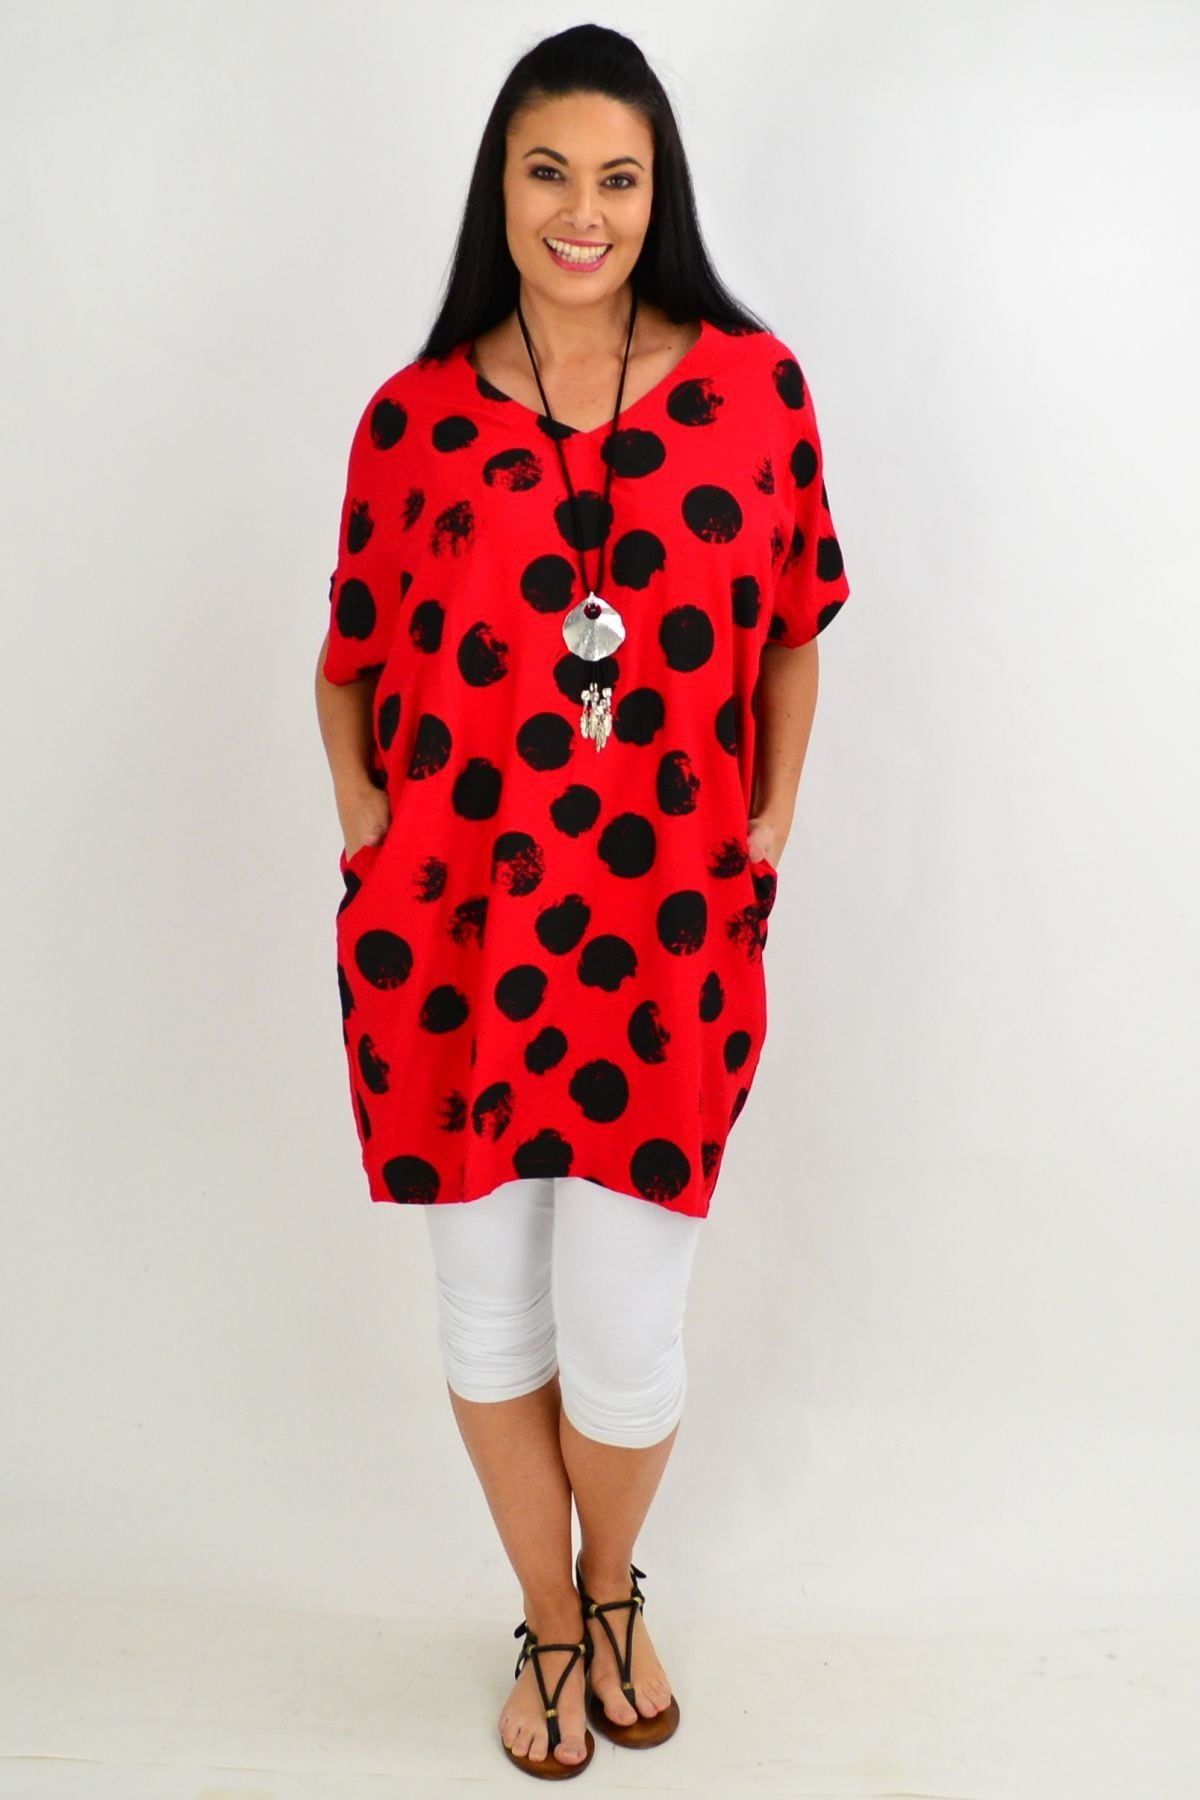 Red Dot Cocoon Tunic Top | I Love Tunics | Tunic Tops | Tunic | Tunic Dresses  | womens clothing online